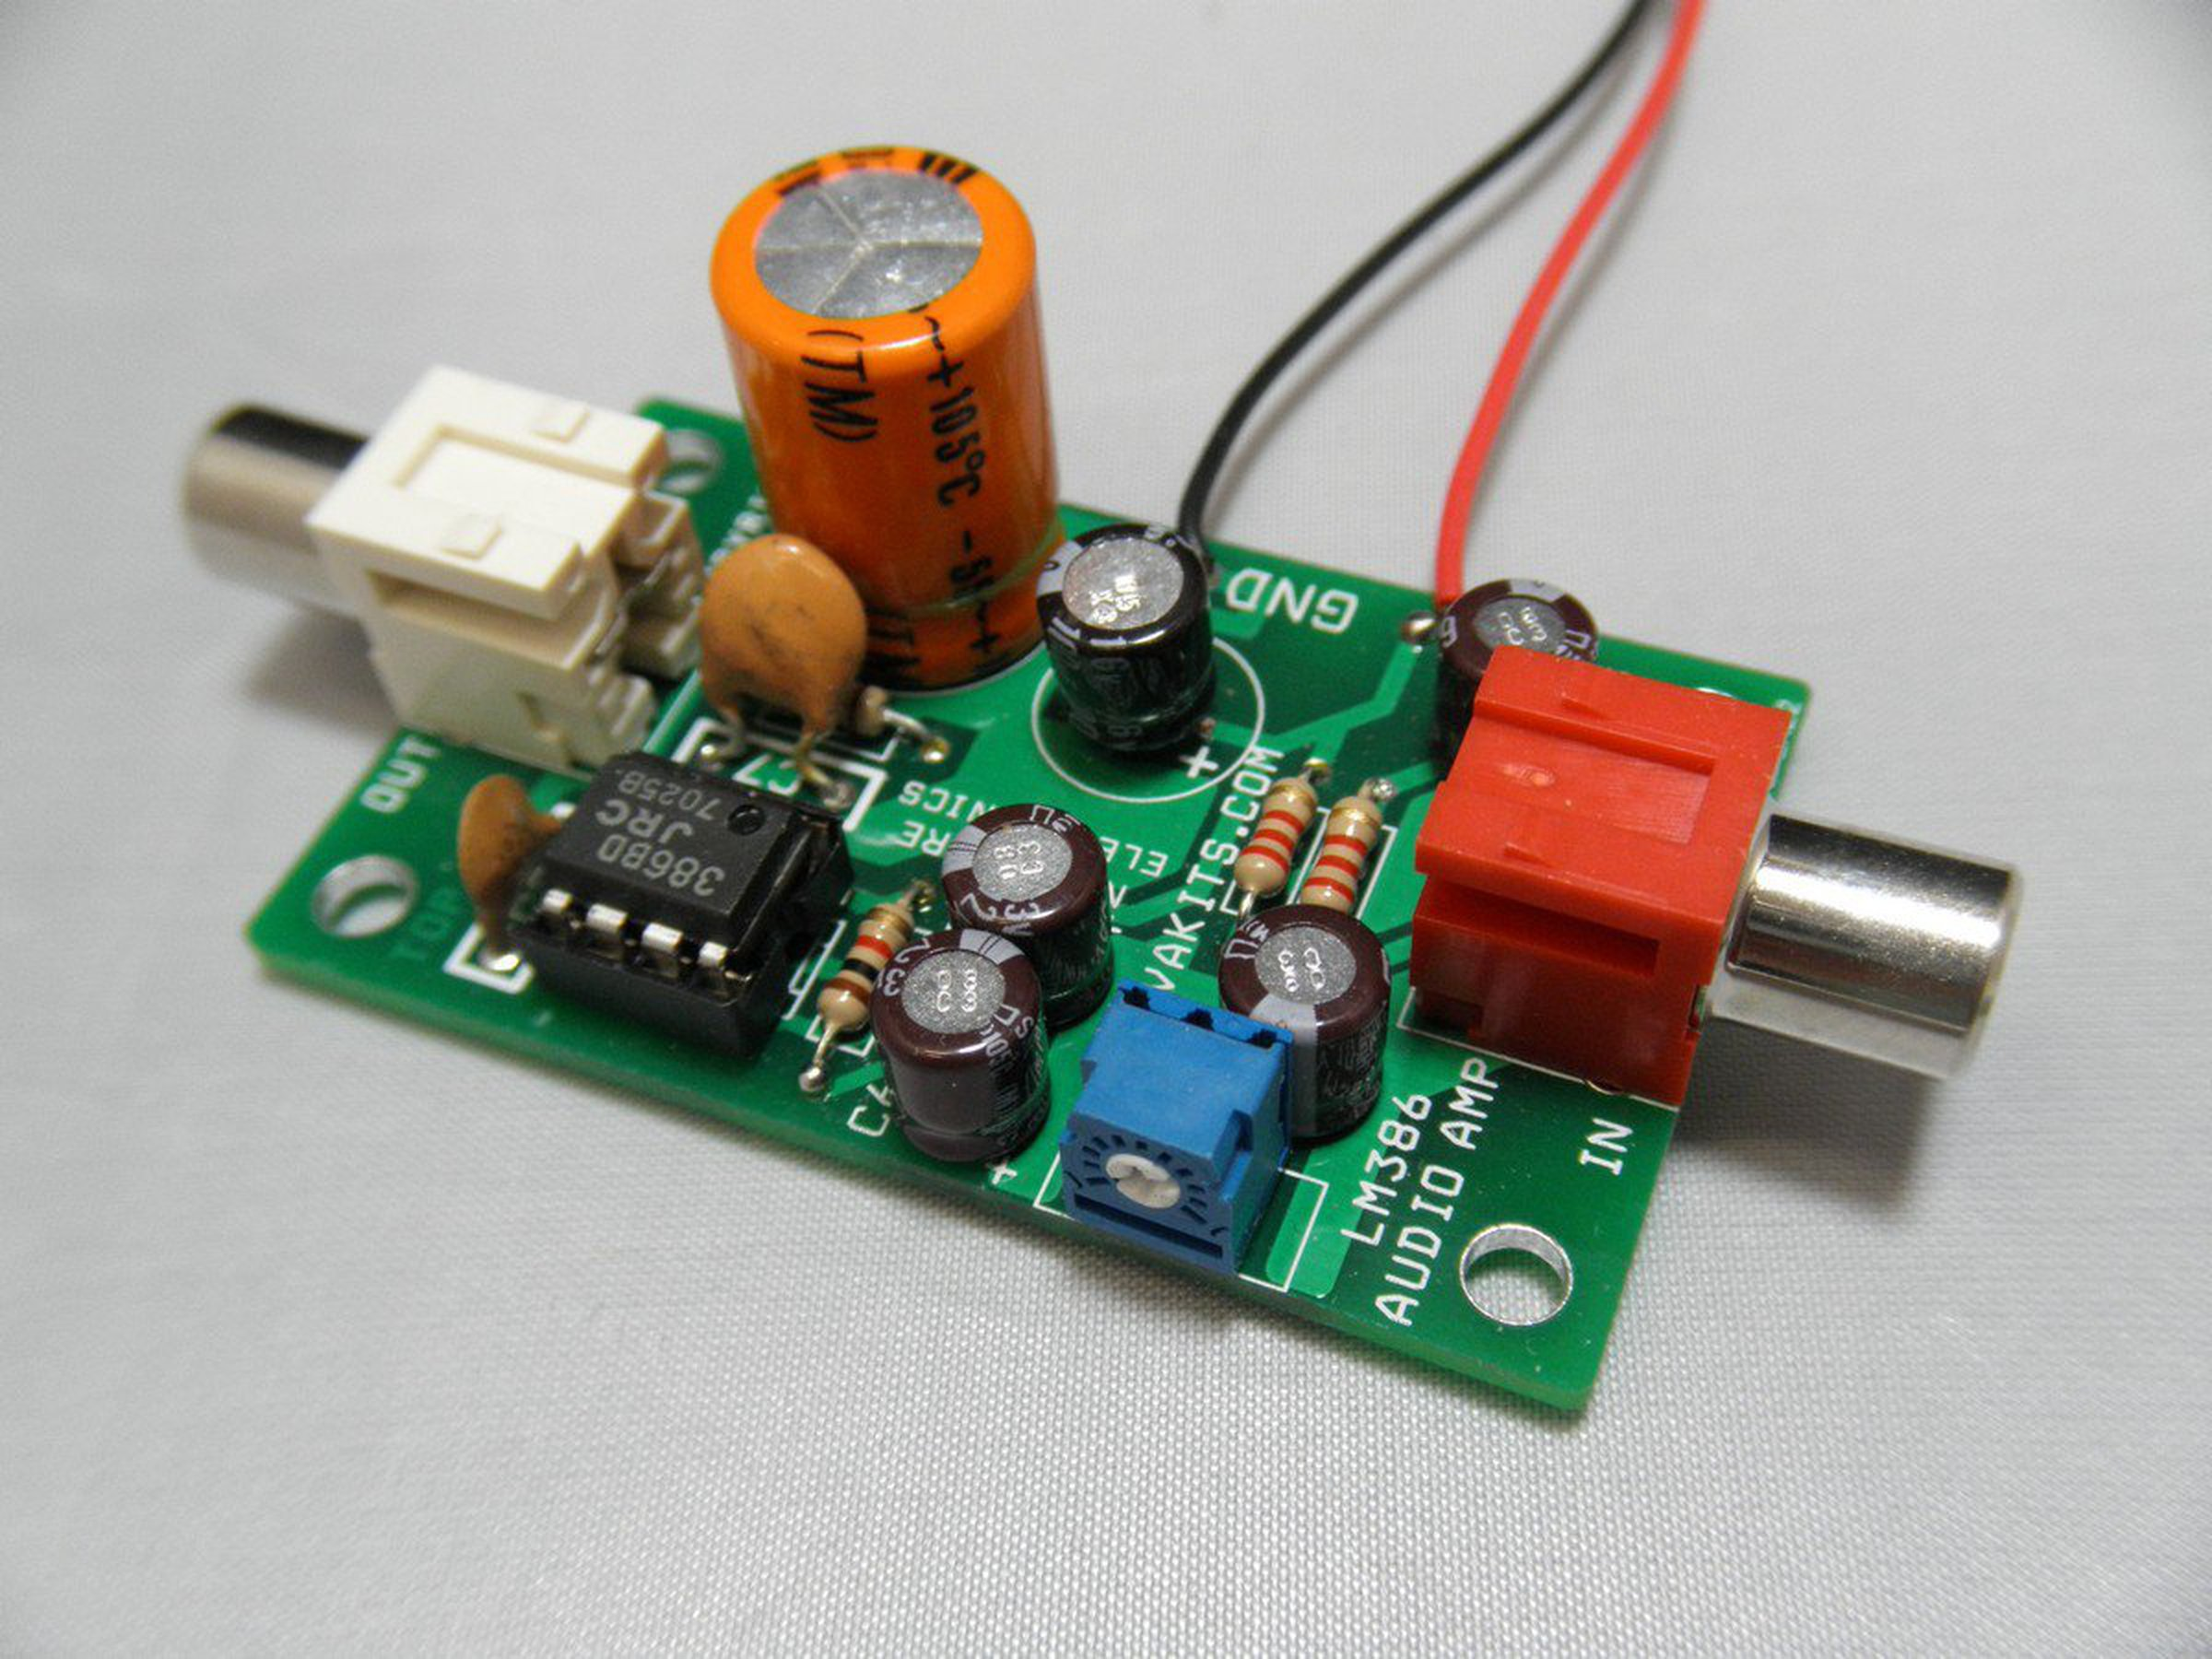 Electret Microphone Amplifier Kit 1695 Em From Nightfire Lm386 Audio Circuit With Pcb 1